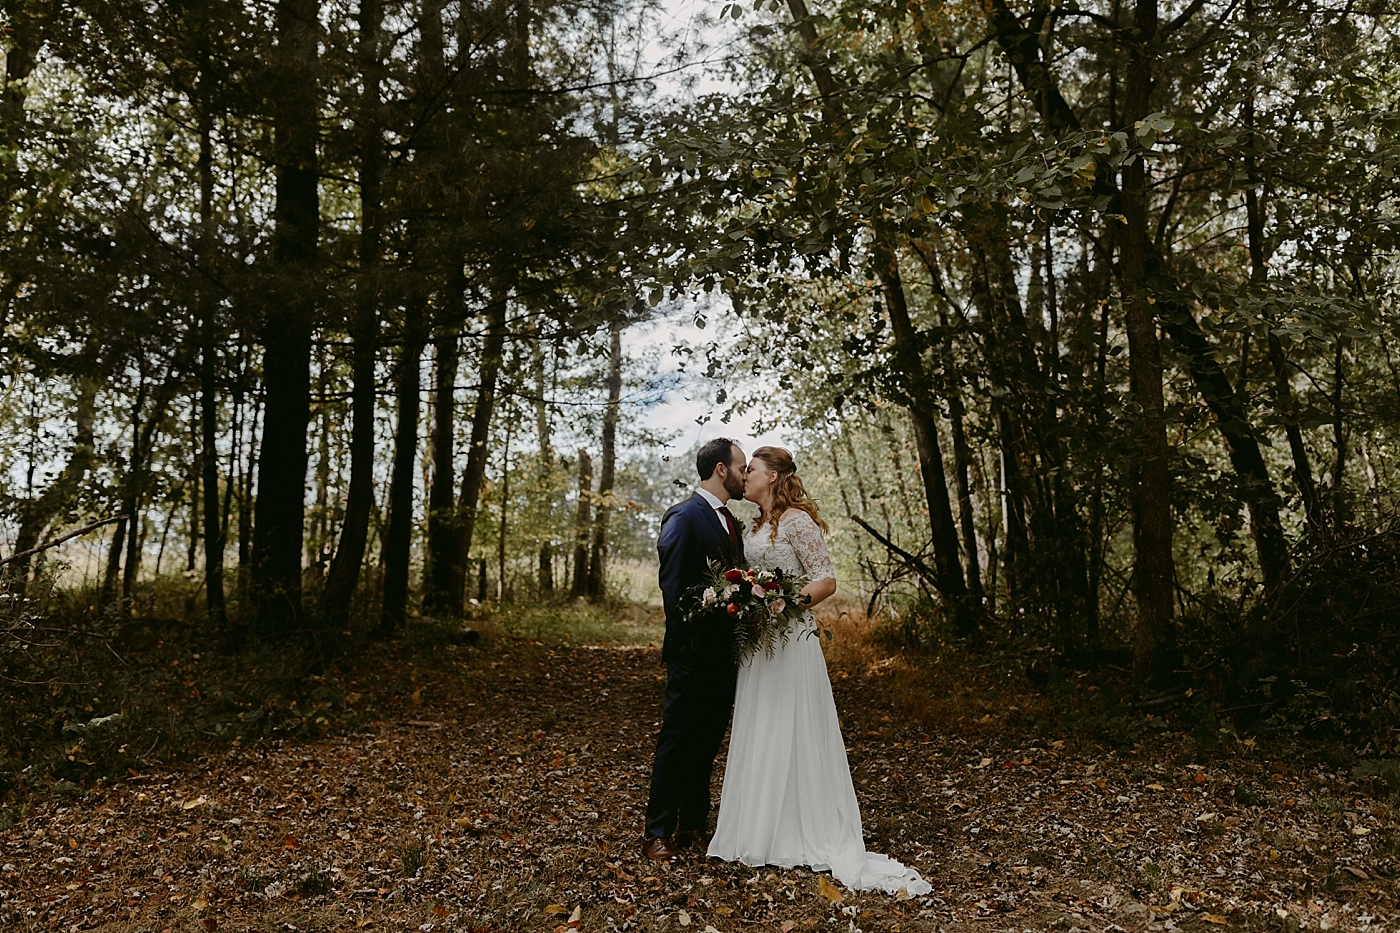 October-Backyard-Wedding_Rachel+Brian_MJPHOTO-251.jpg